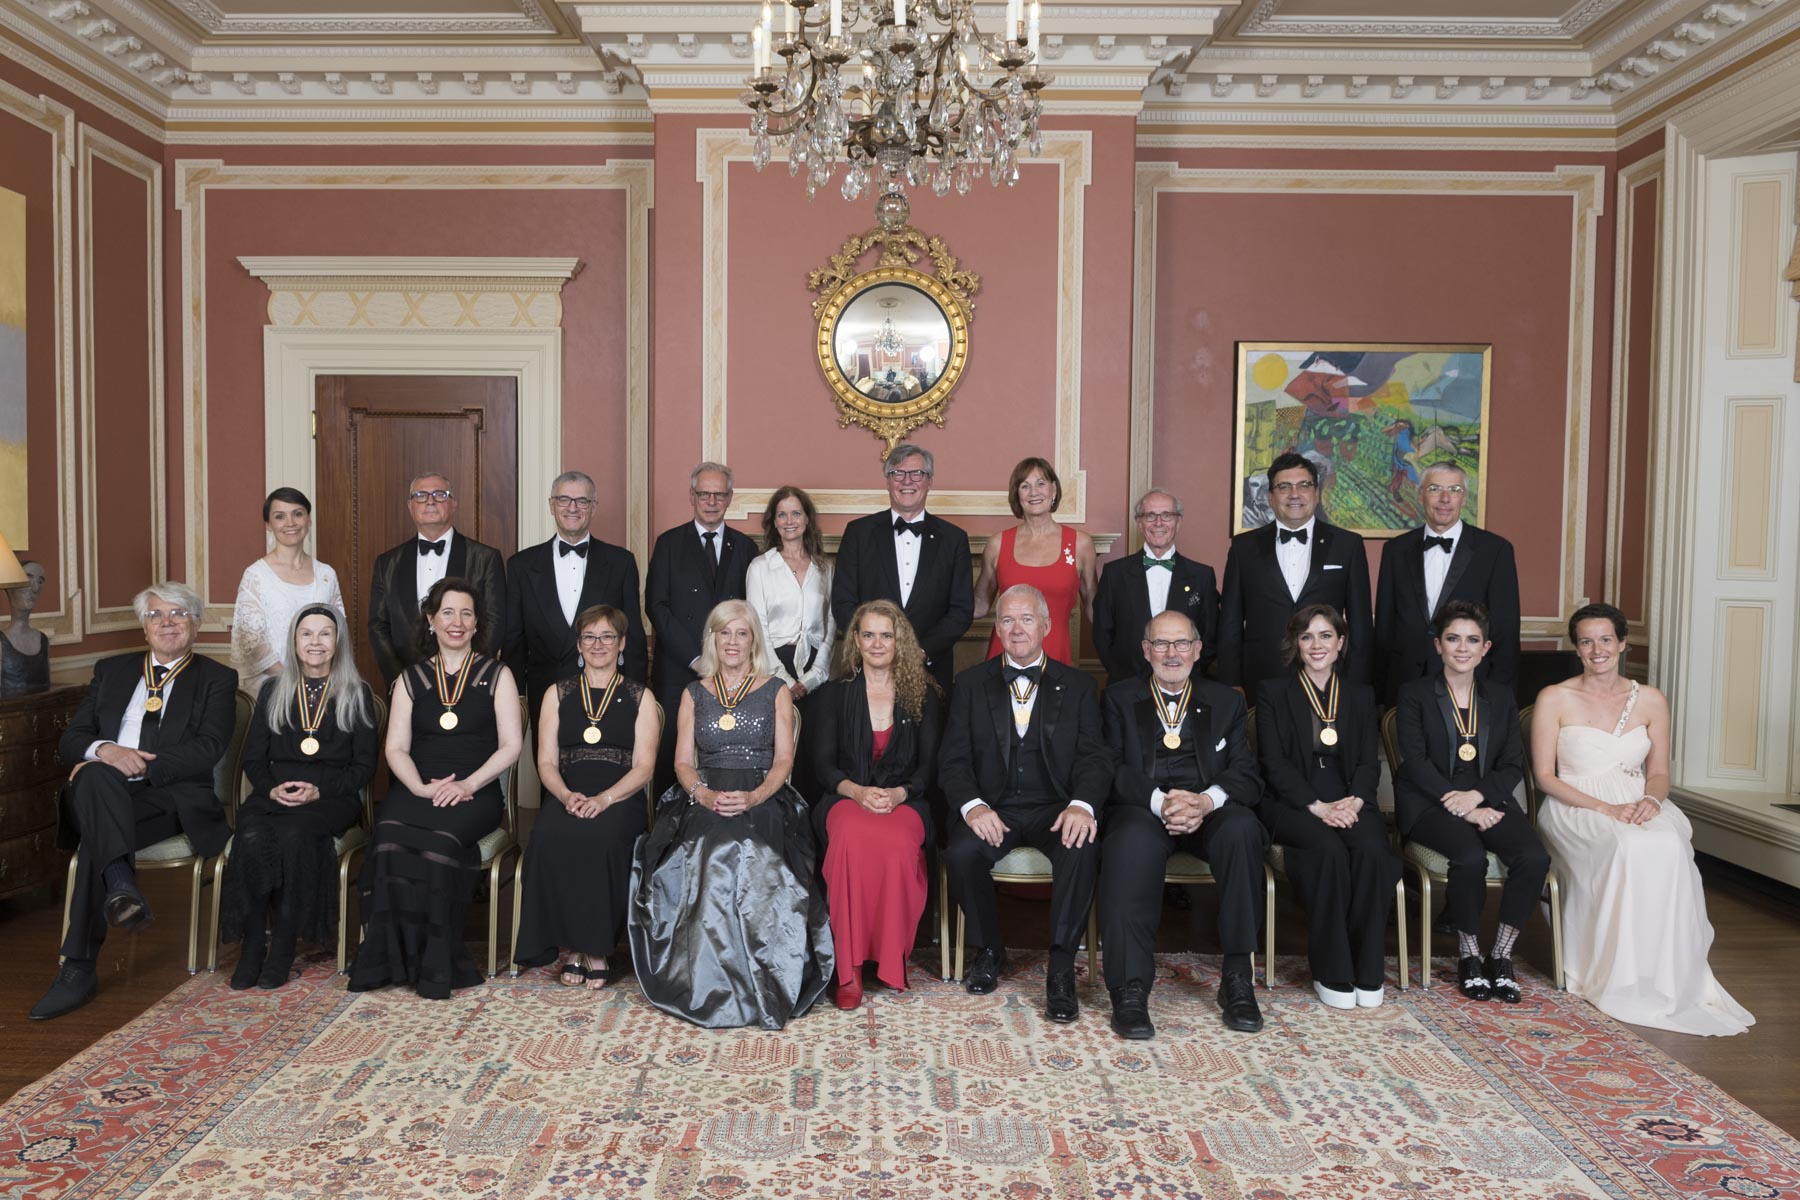 Récipients of the 2018 Governor General Performing Arts Awards.